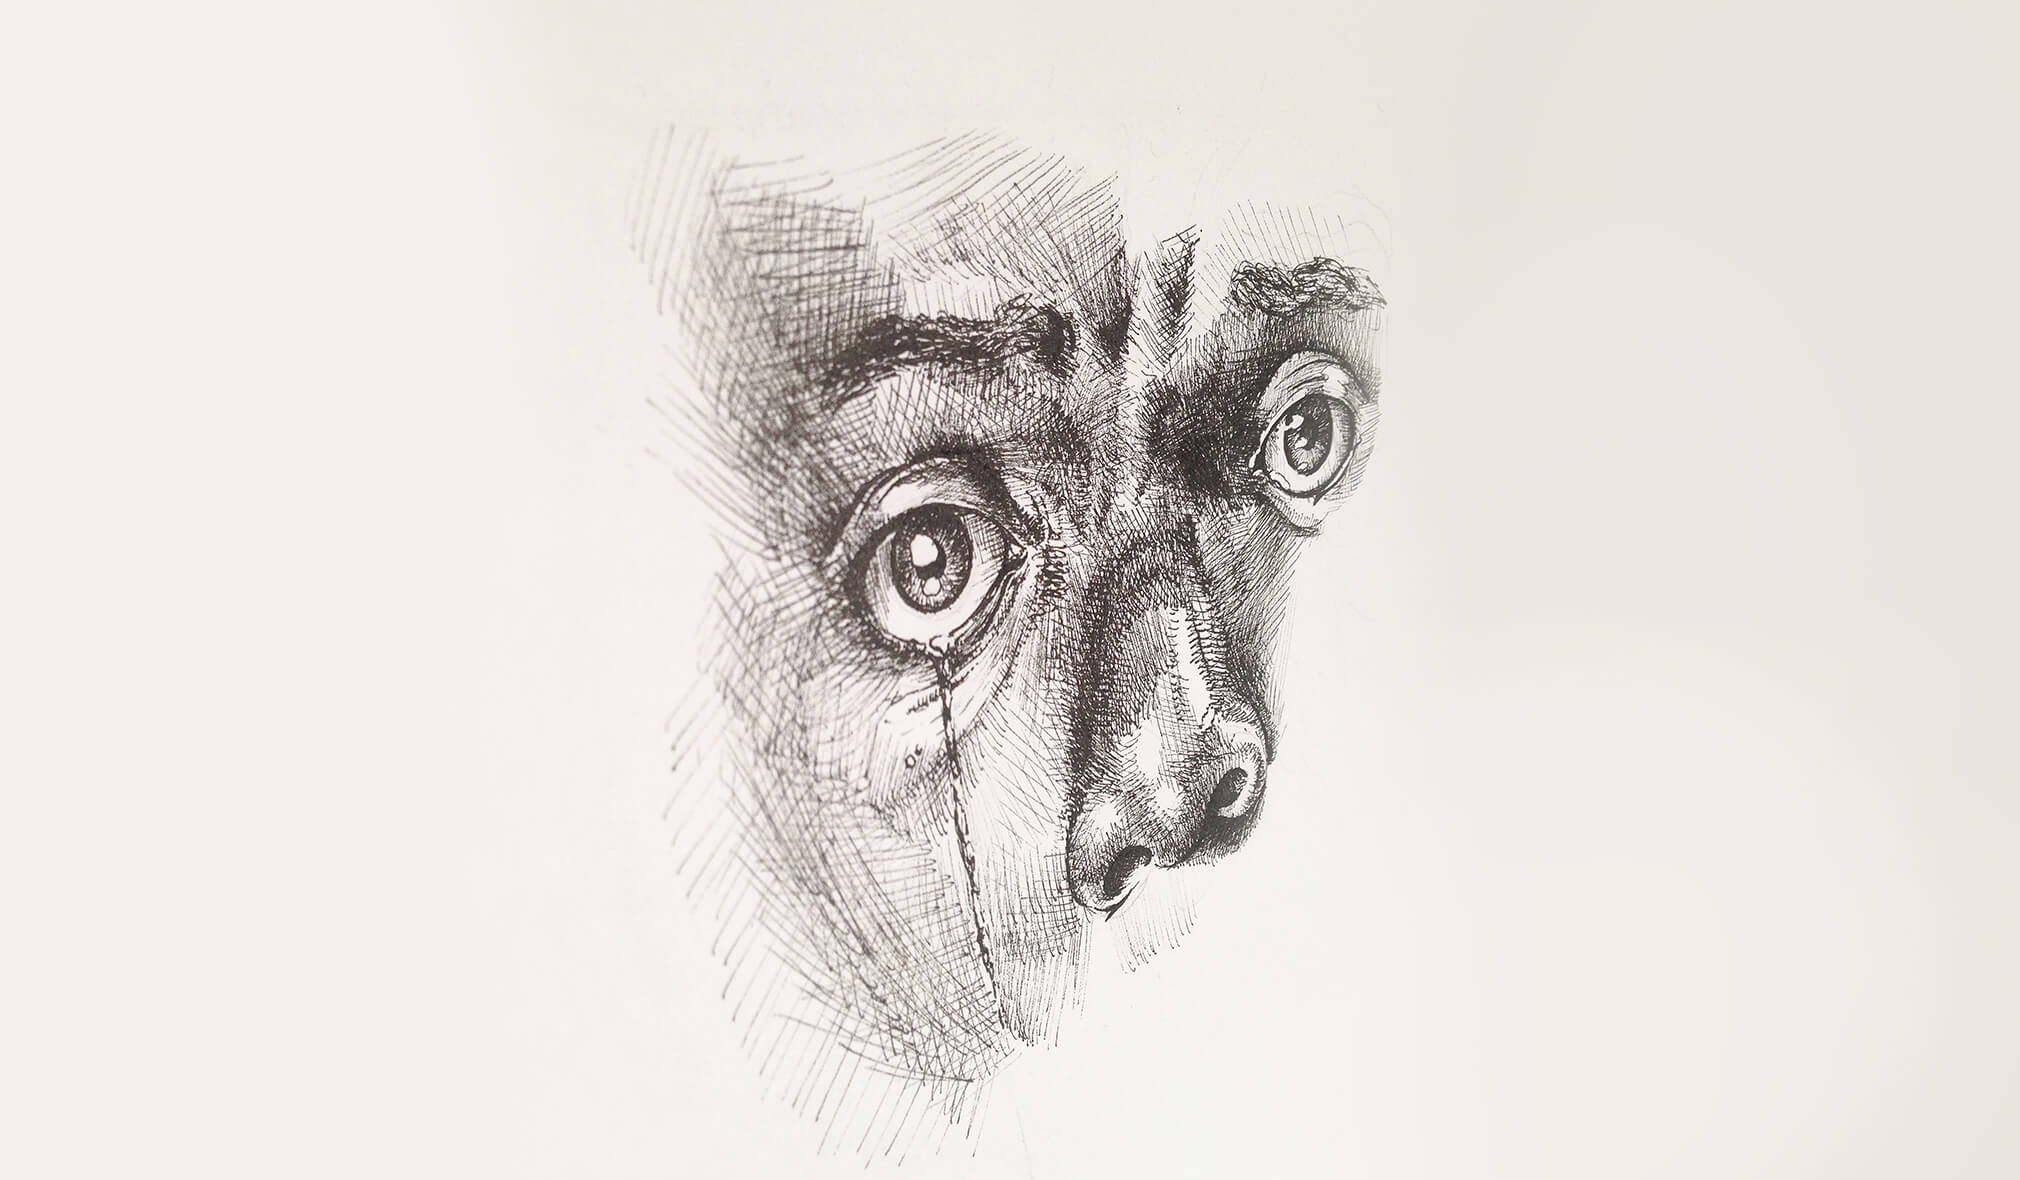 A black and white sketch of Chris eyes. A solitary tear rolls down his face.